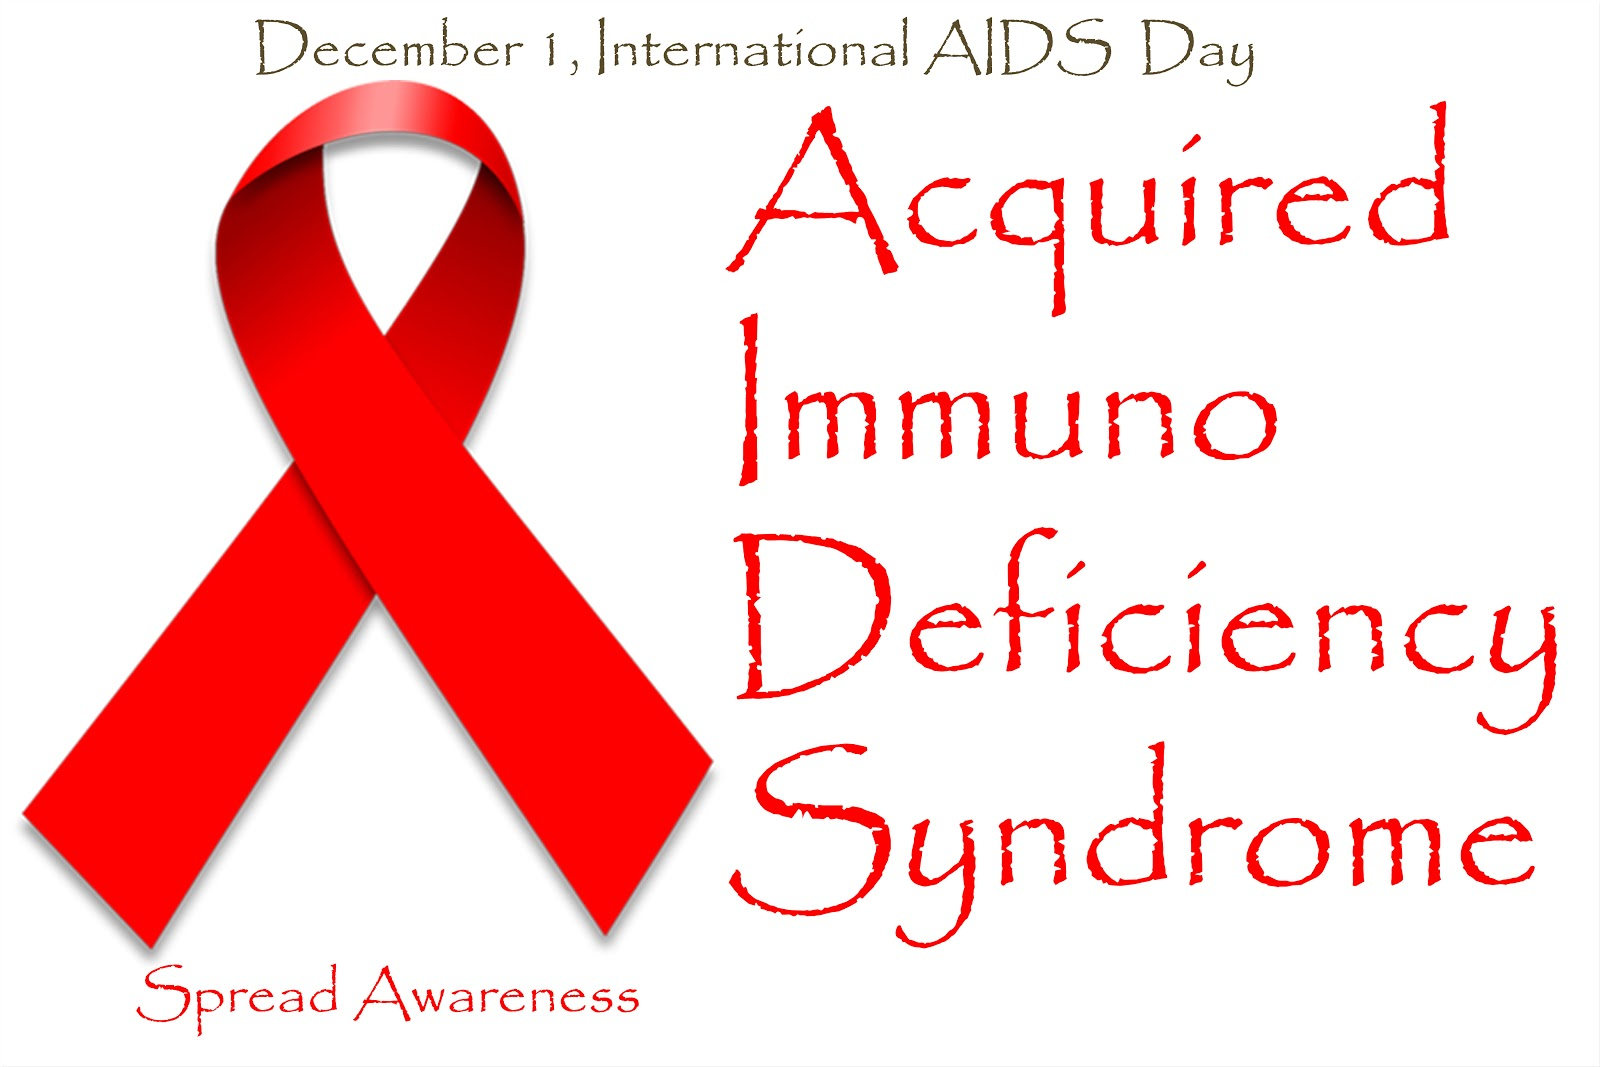 Shakehand with Life  DefinitionsCausative Agent of AIDSHow HIV break the Immune system ofThe Human Body?AIDS in INDIAHow HIV Spreads? Or Modes of Transmission of HIV/AIDSAIDS cannot be spread ByQuality Control and interpretation ofSerological Tests related to AIDSMeasure to Control the spread of HIV